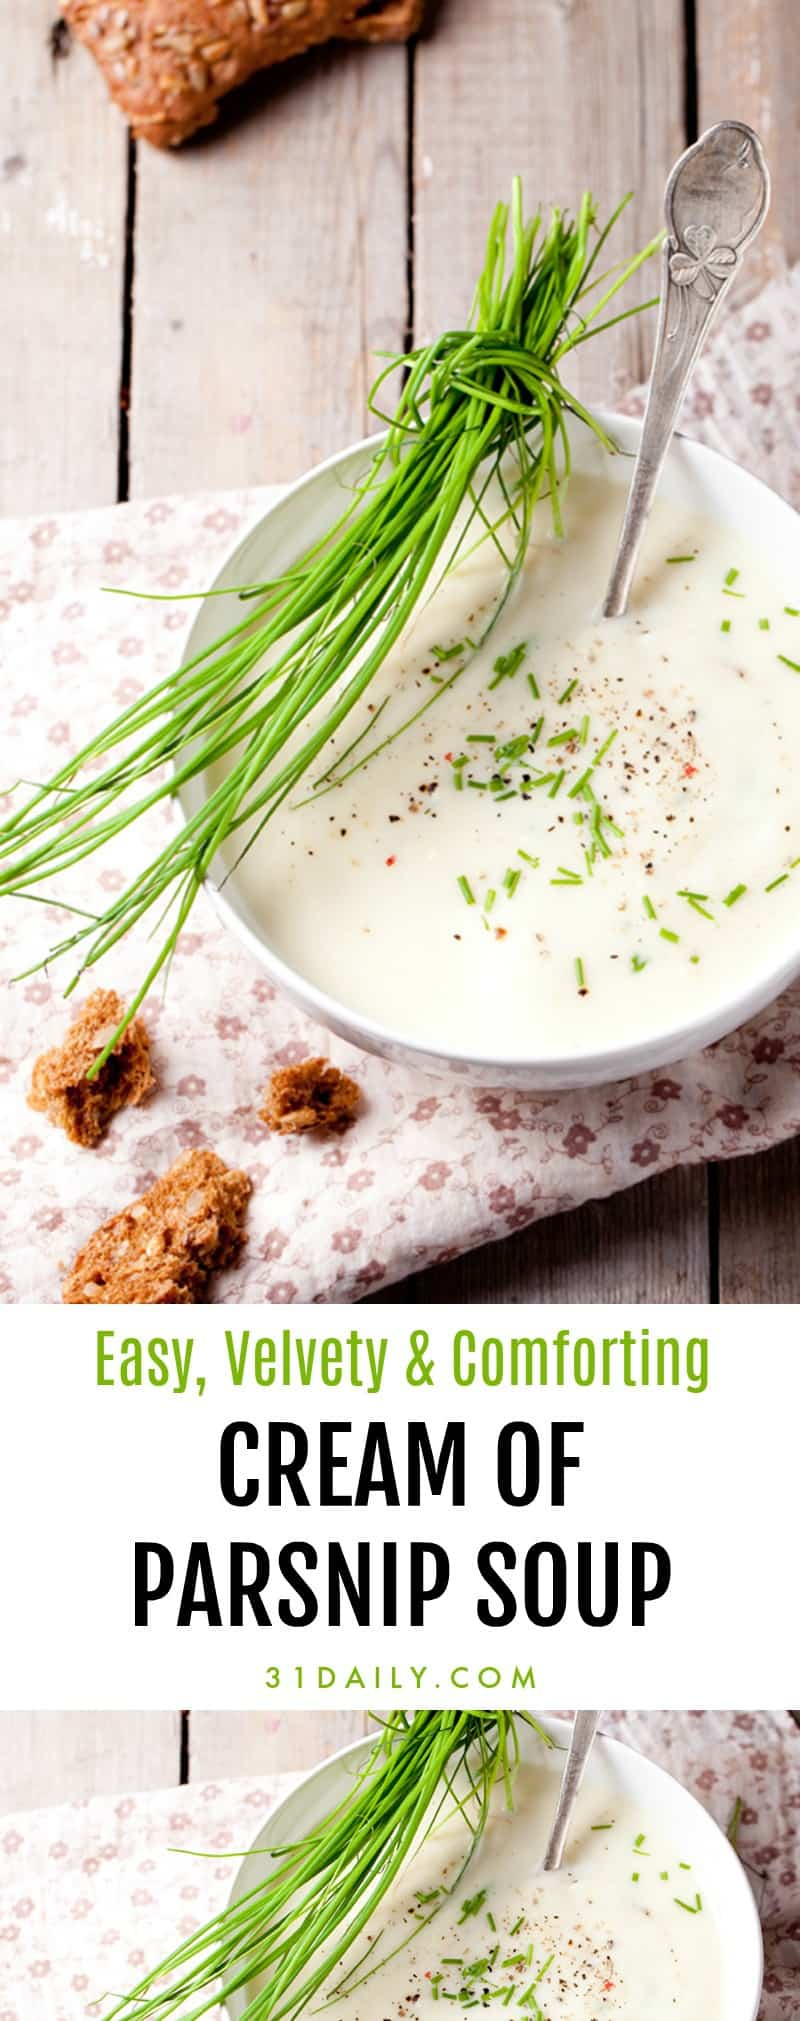 Cream of Parsnip Soup: Irresistibly Easy, Velvety, and Comforting | 31Daily.com